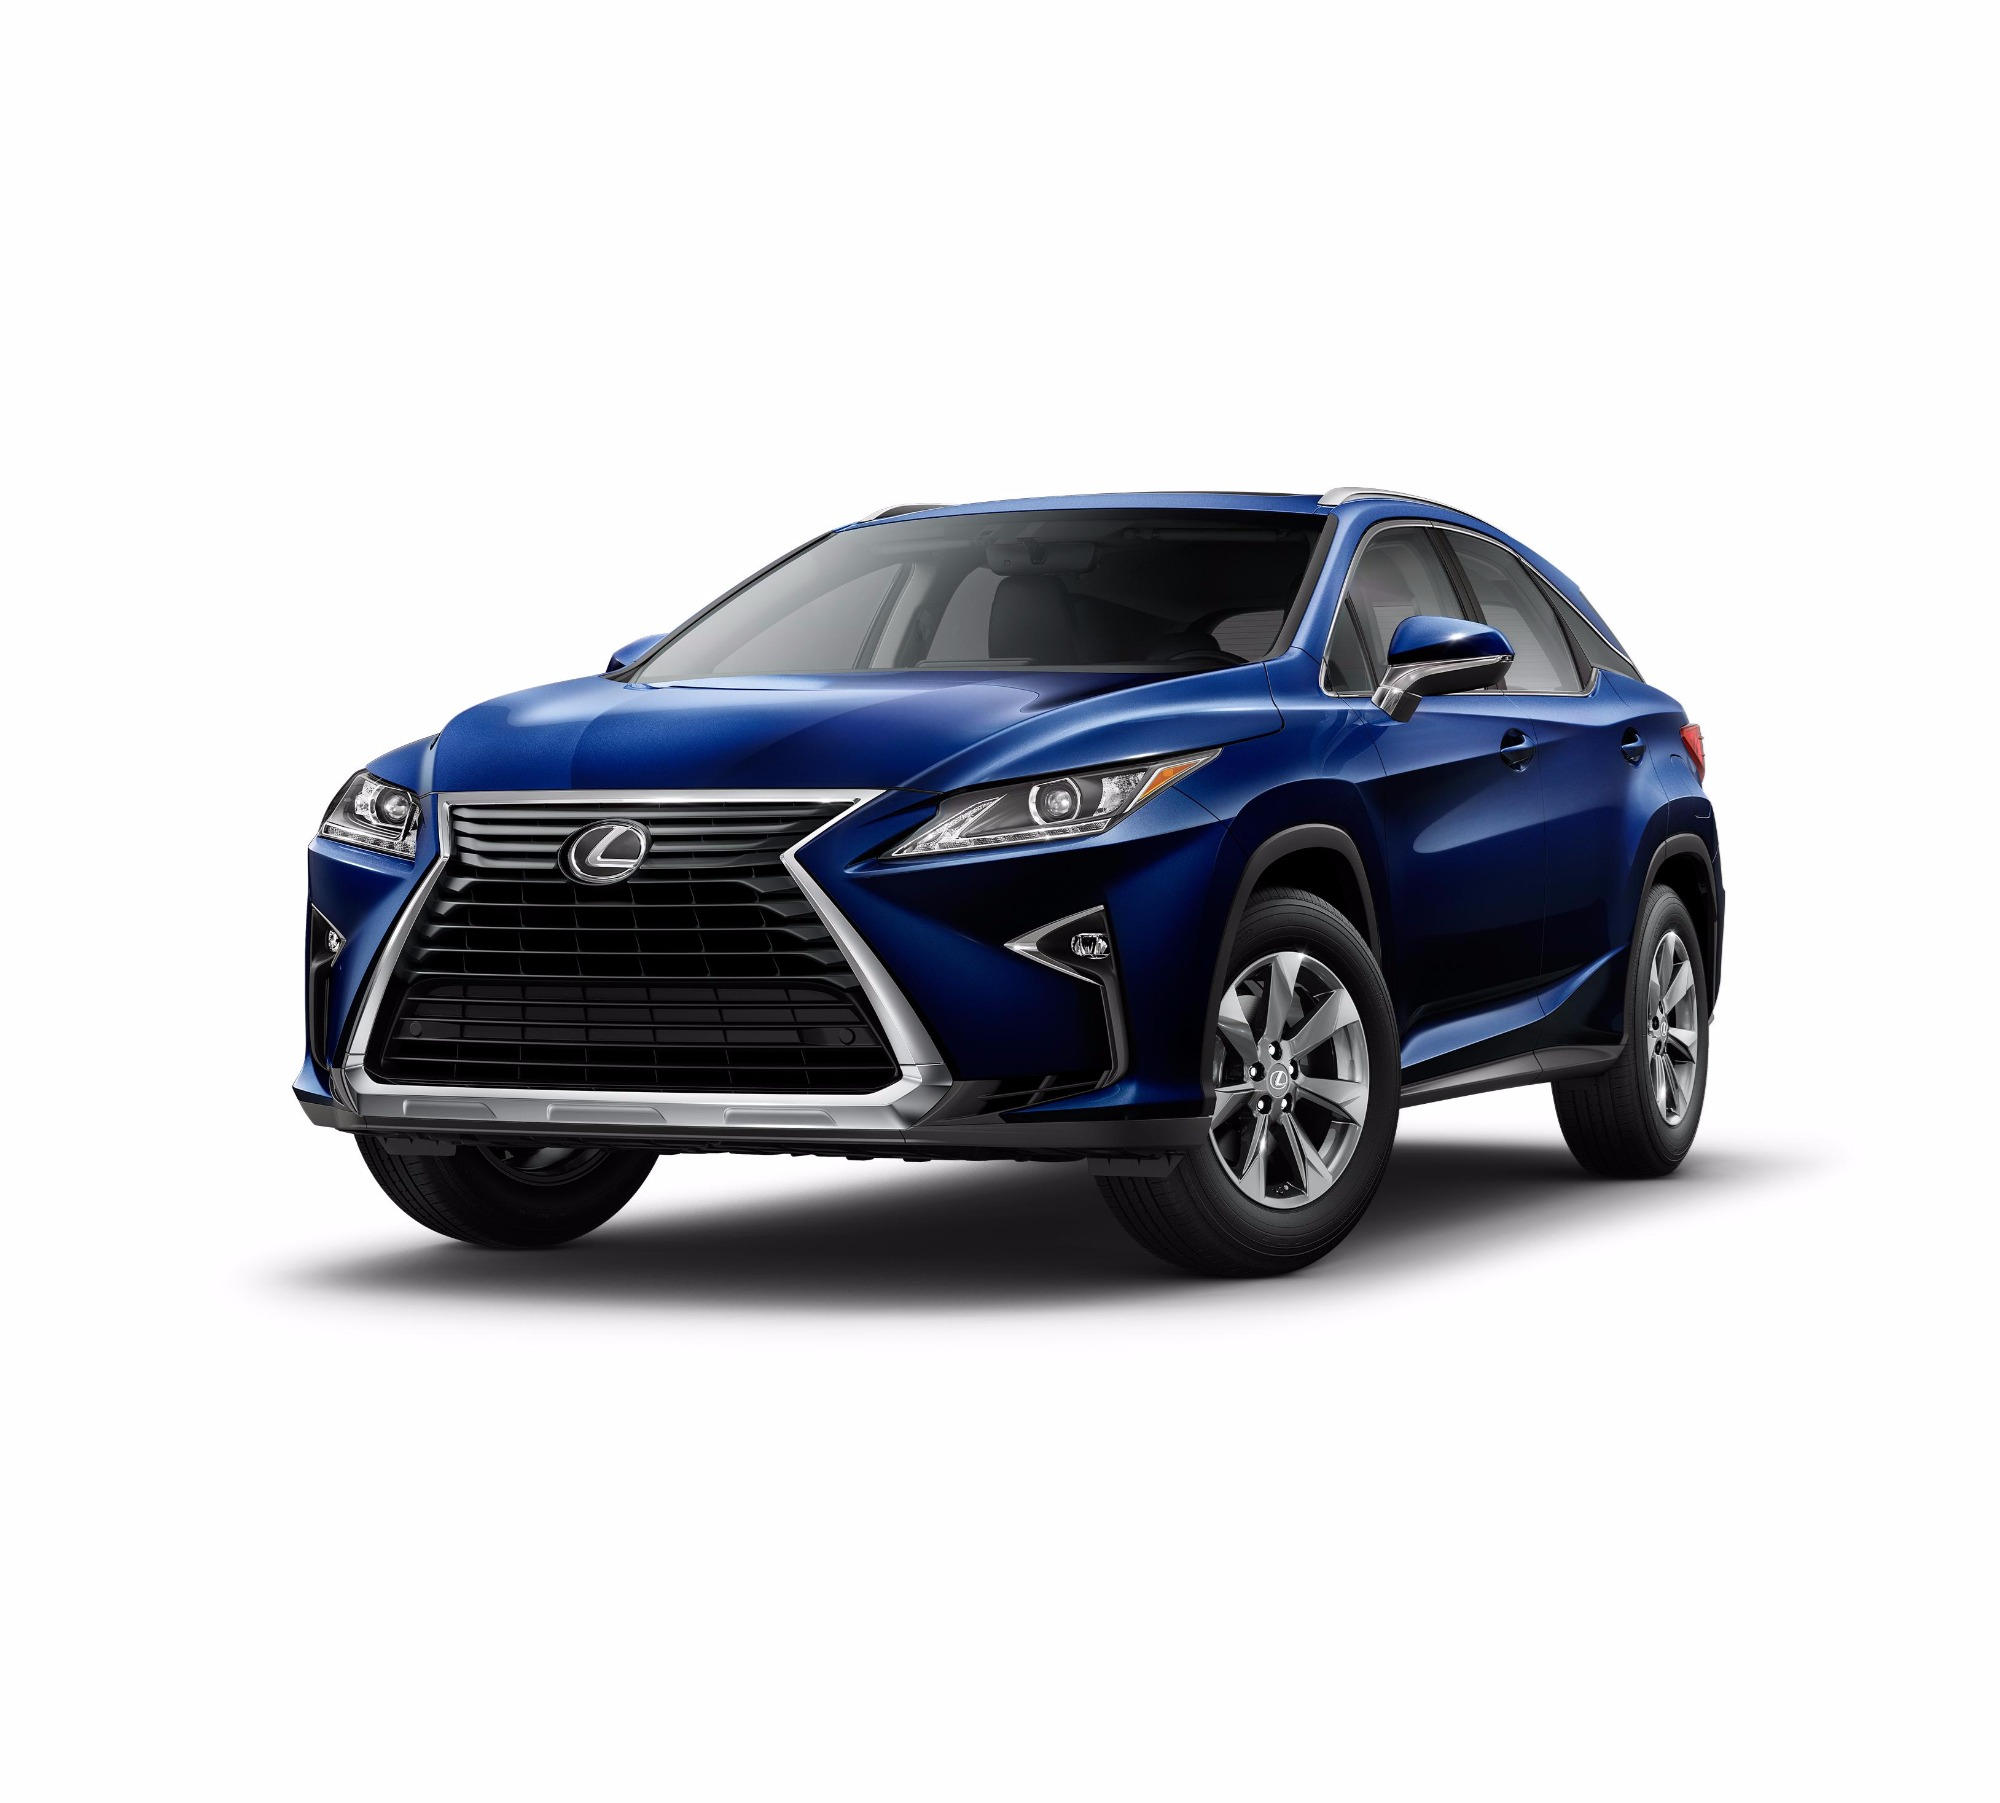 2019 Lexus RX 350 F Sport Features, Specs And Price